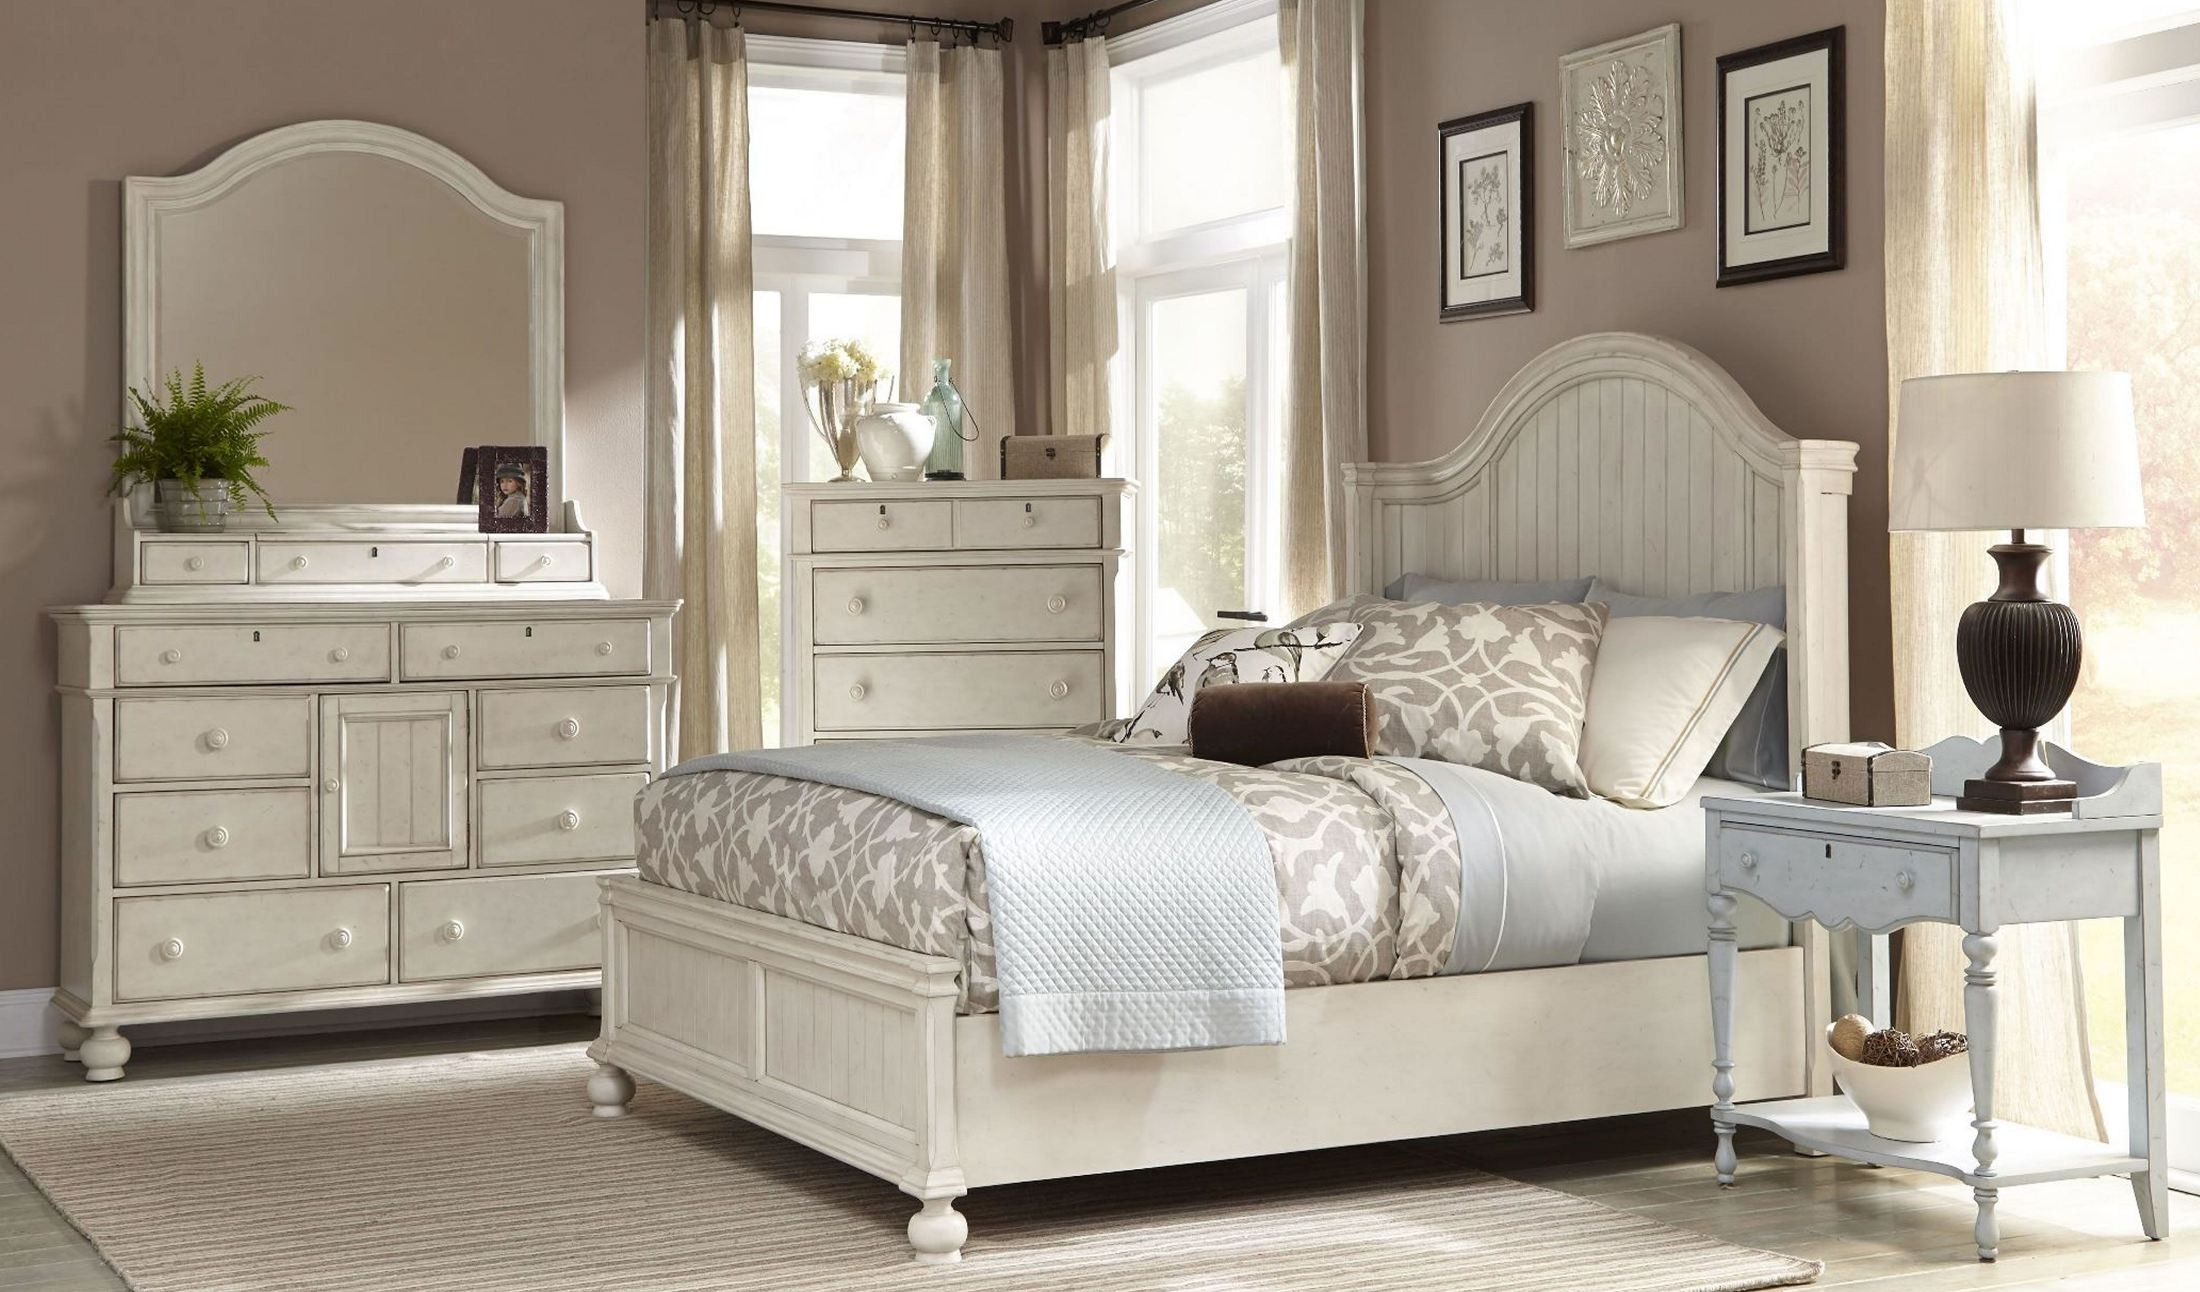 Newport antique white panel bedroom set from american - White vintage bedroom furniture sets ...